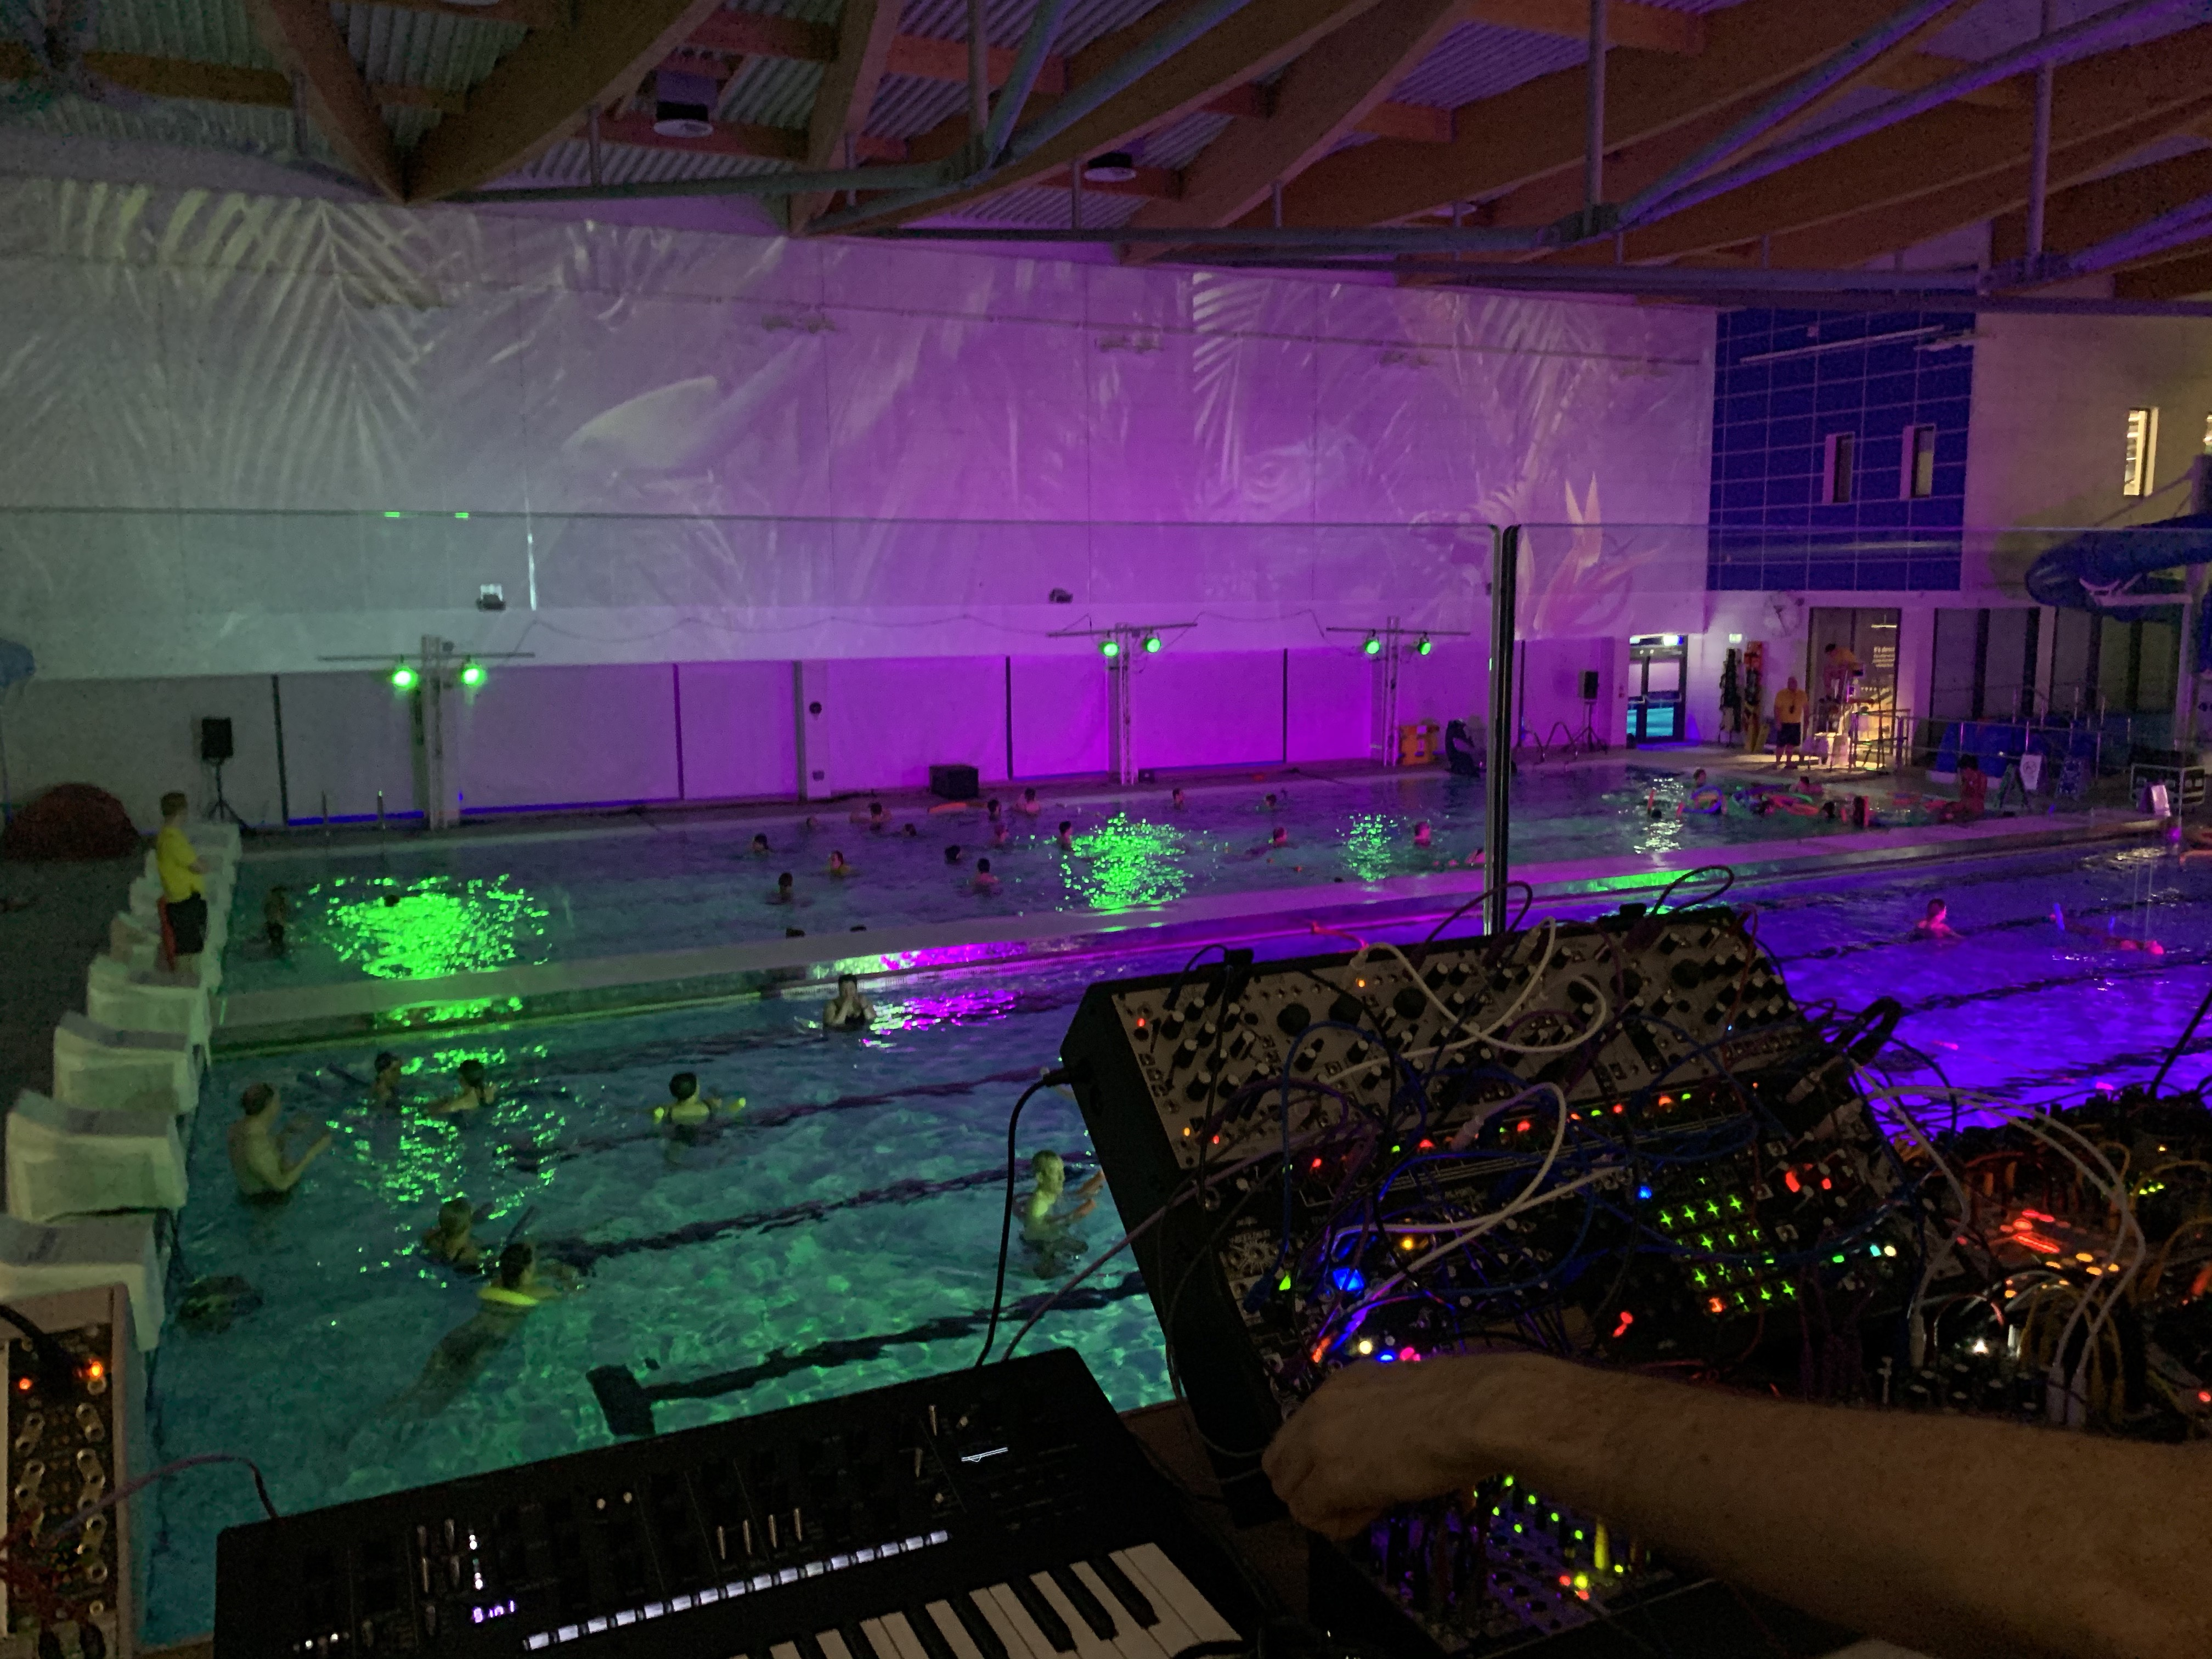 Two synthesisers being played pool side in a neon illuminated swimming pool.